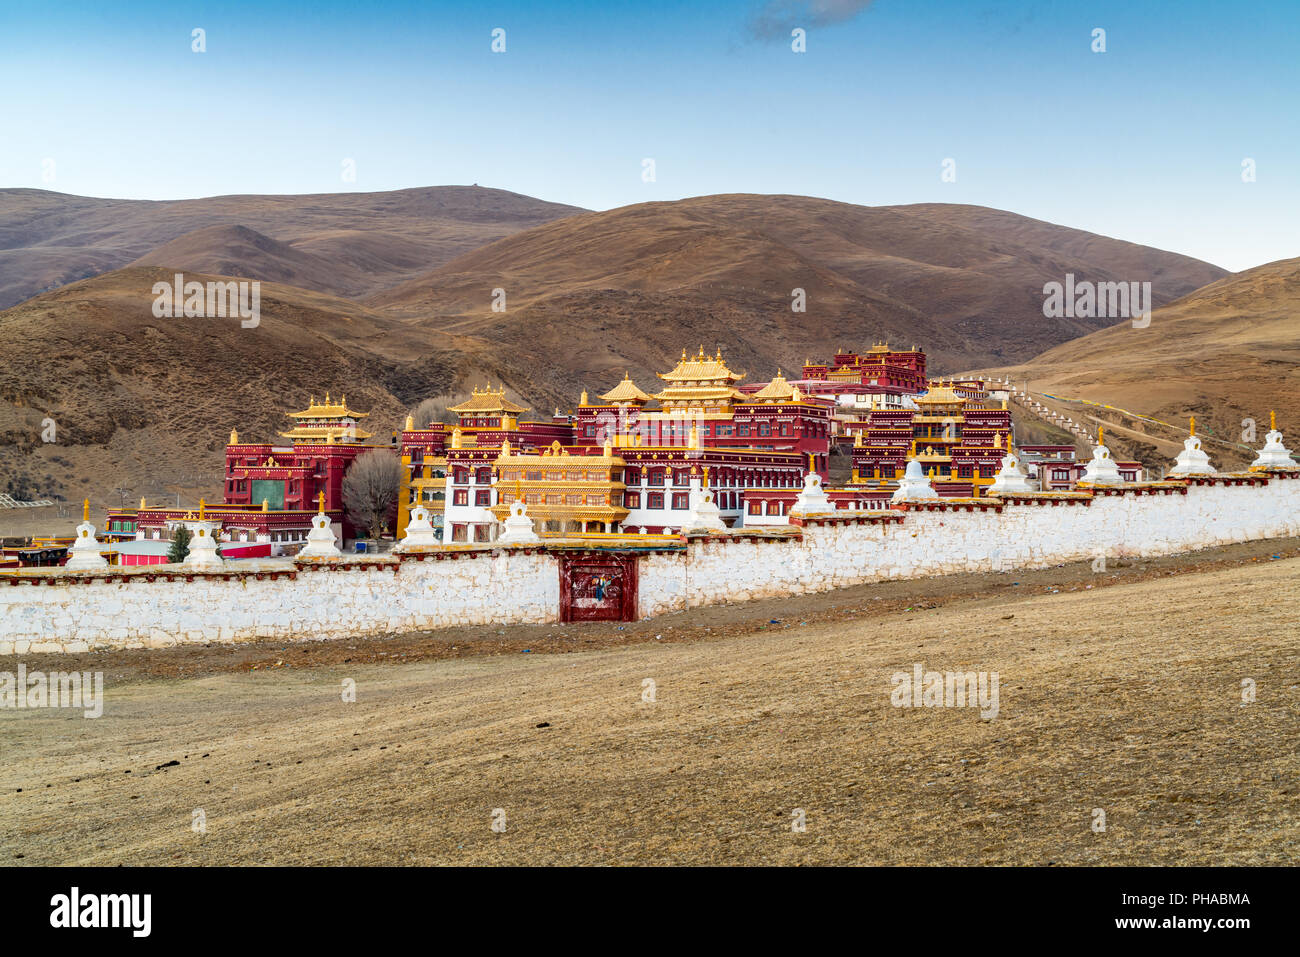 Tibetan monastery on the hill in Litang - Stock Image